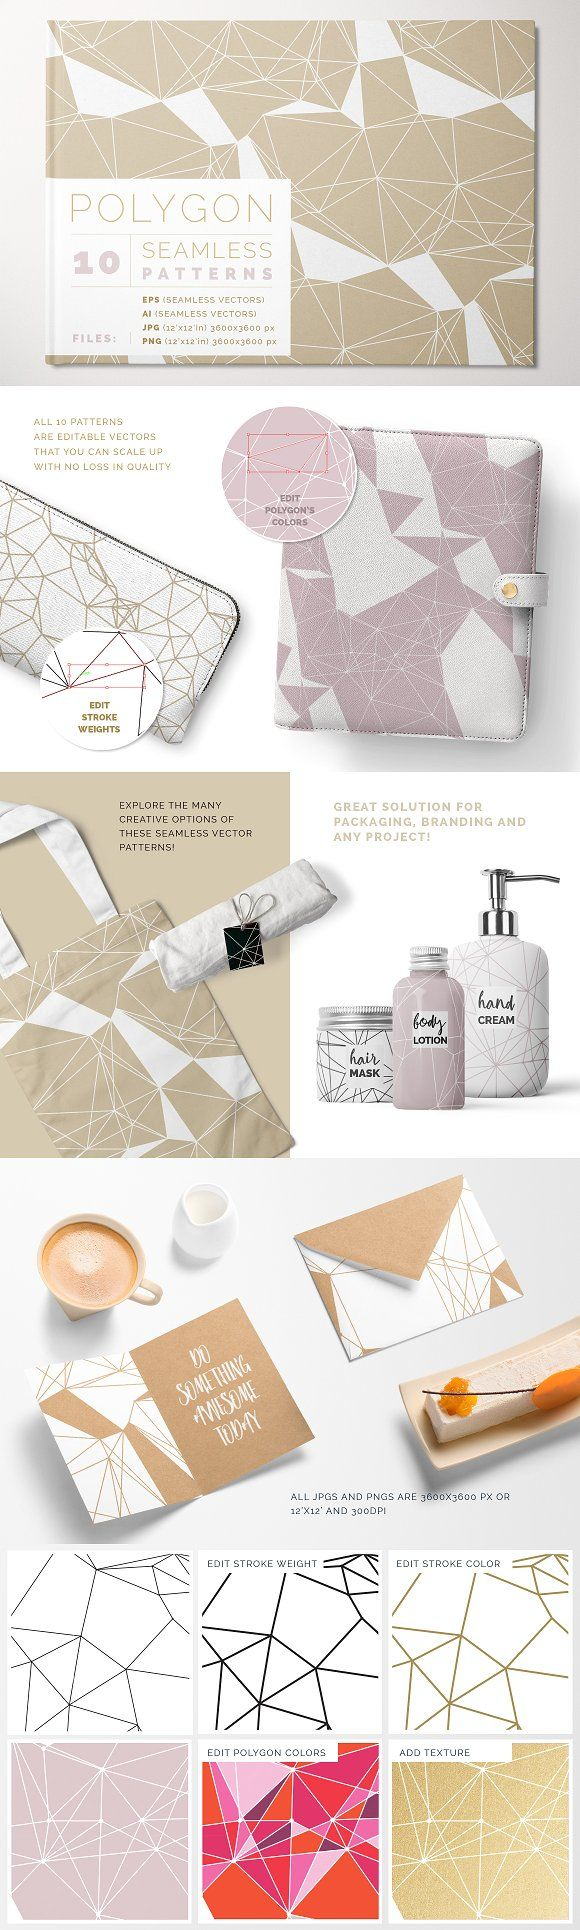 Polygon Patterns by Youandigraphics on @creativemarket